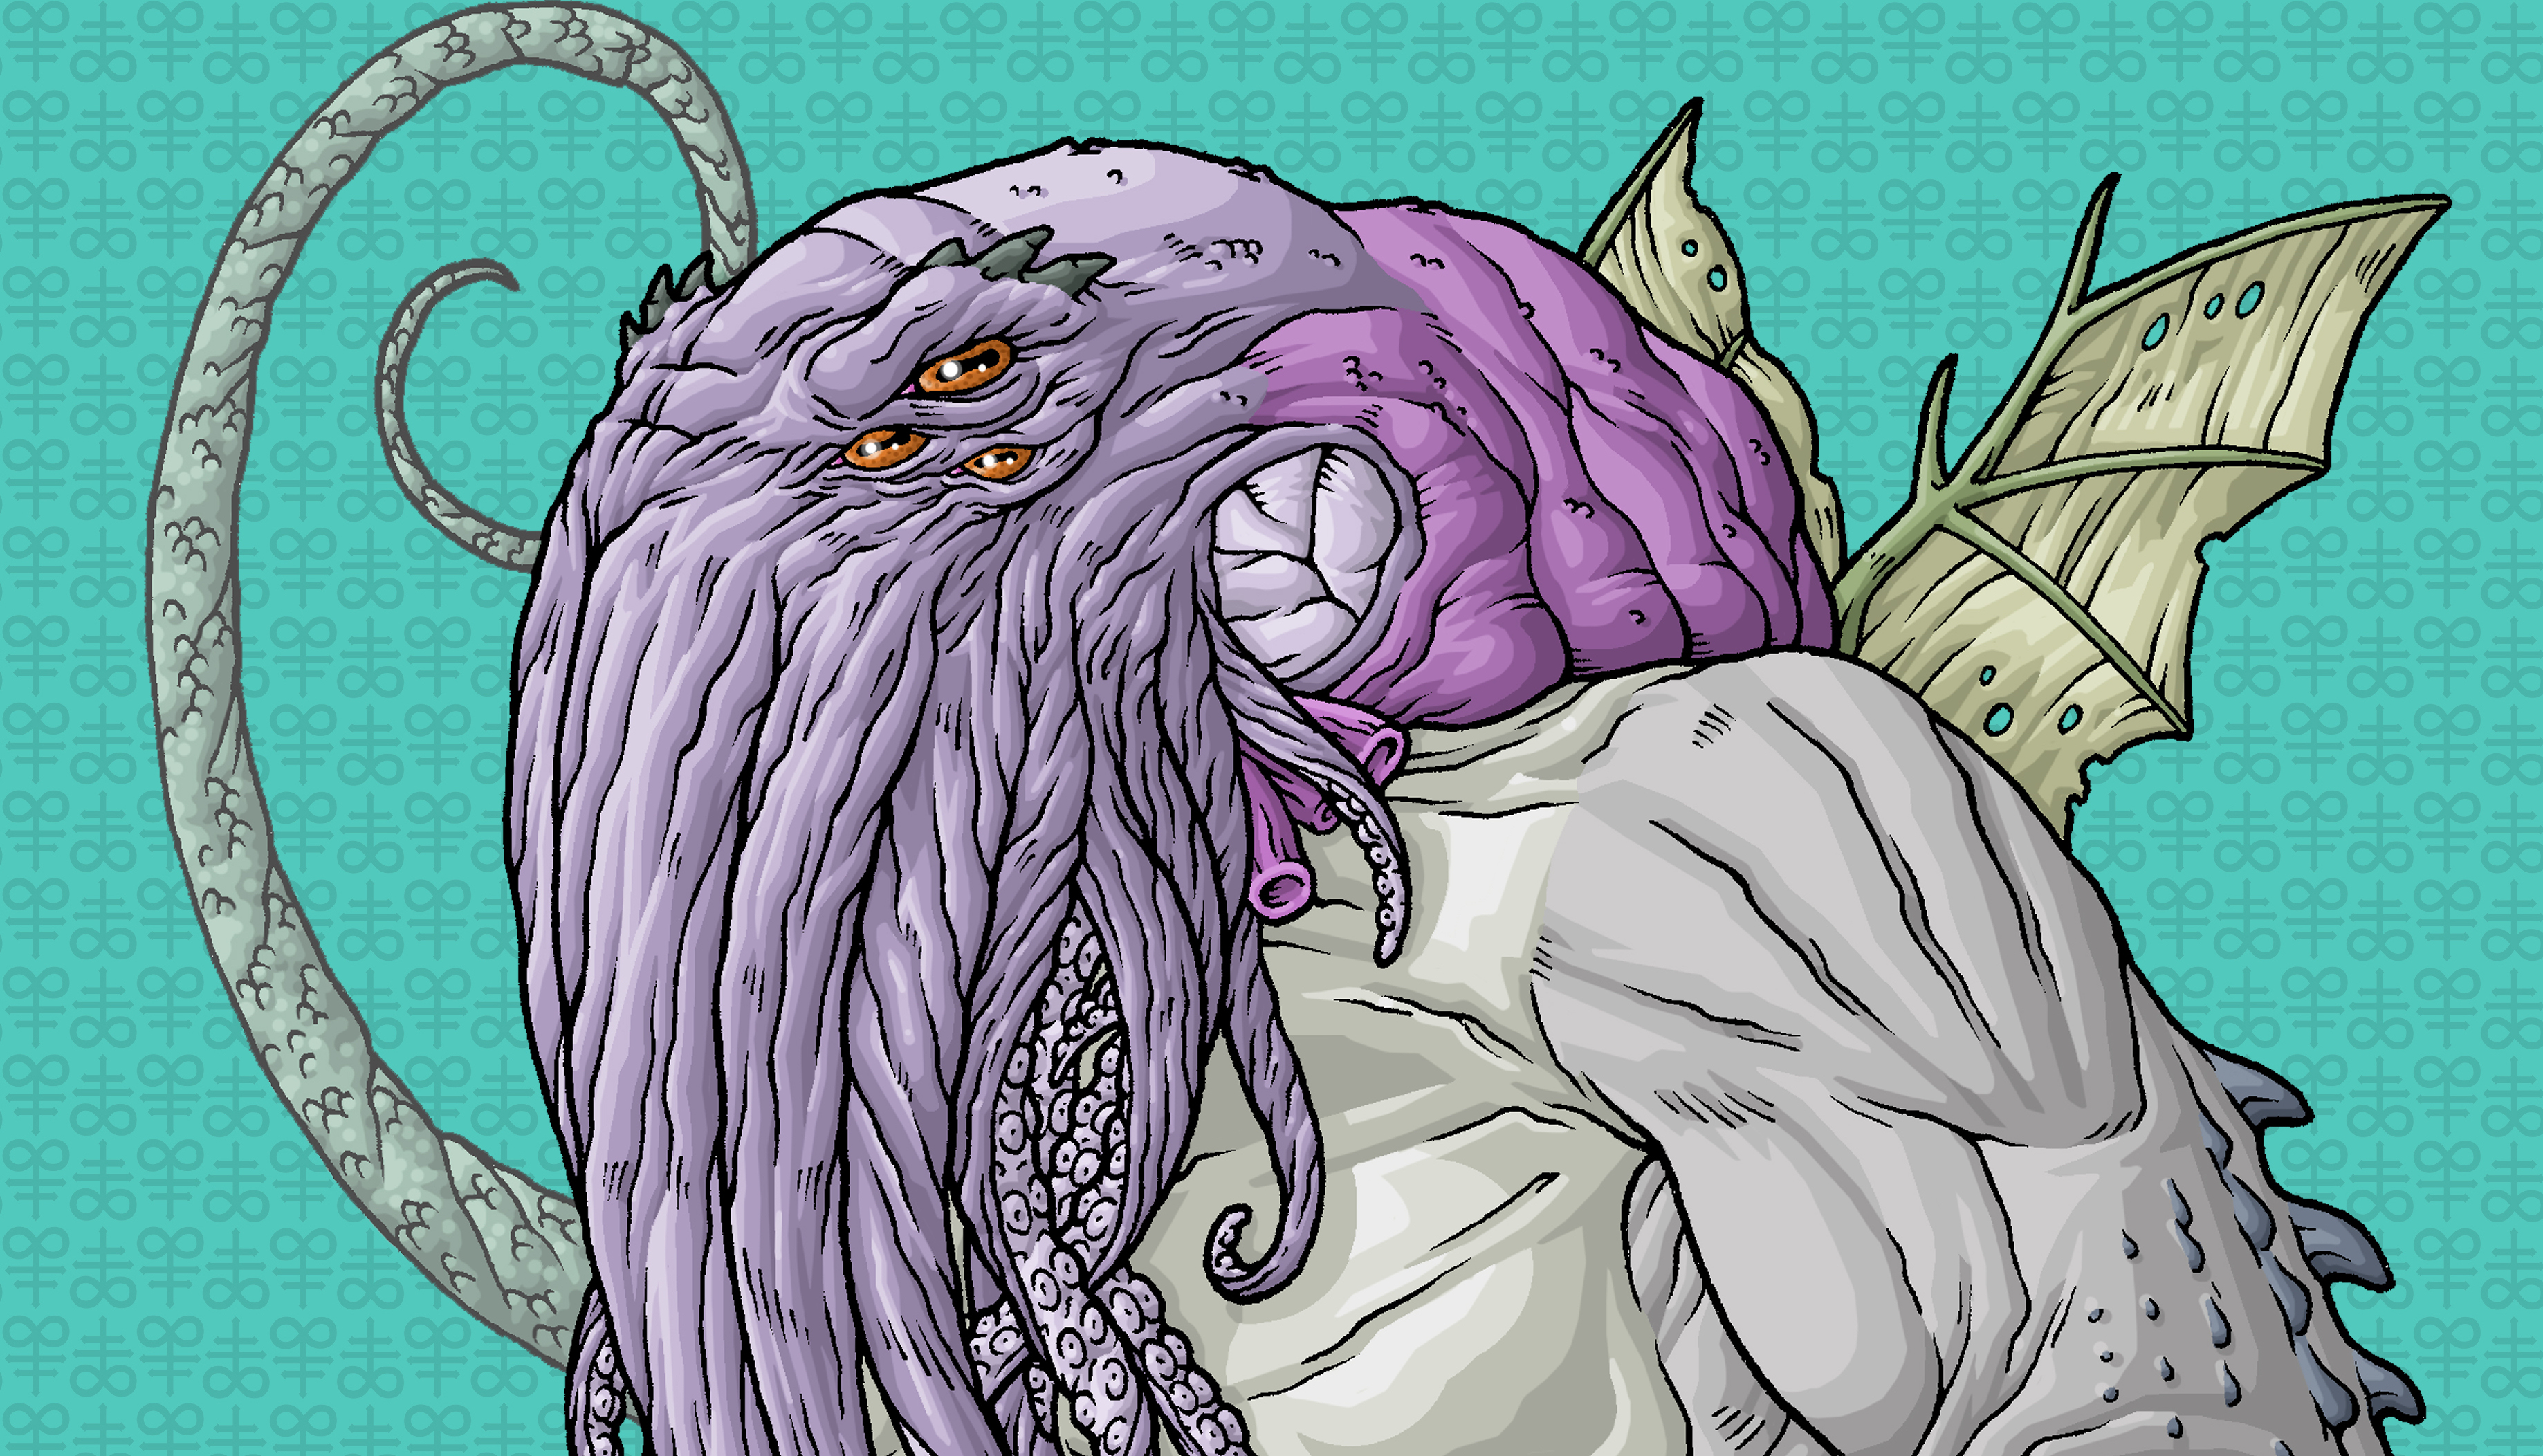 cthulhu from hp lovecraft story